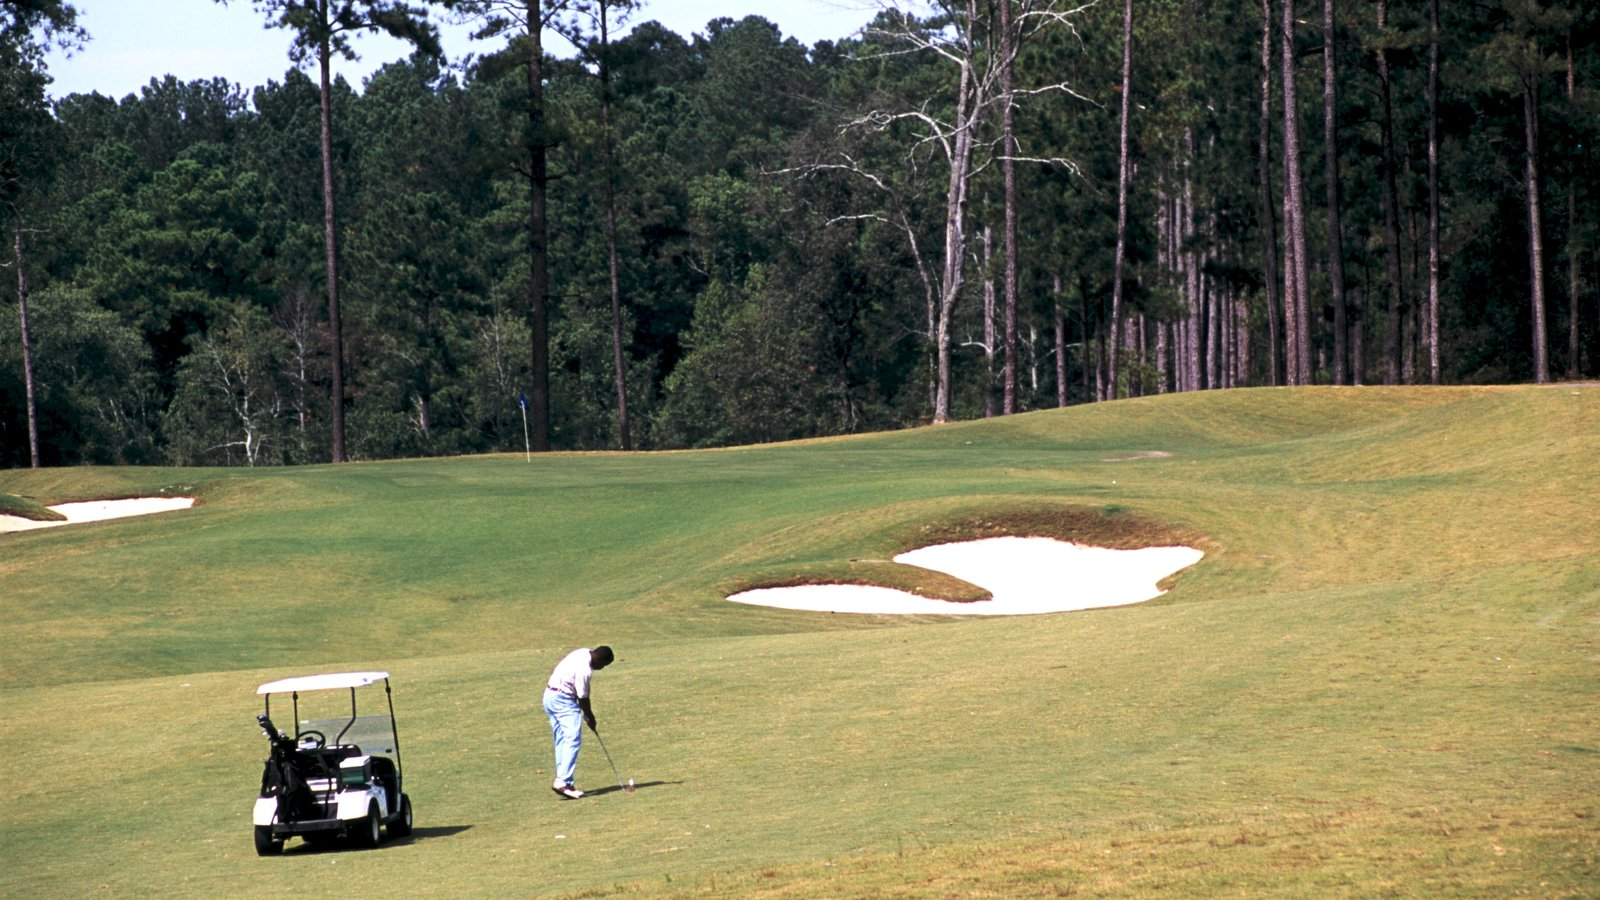 Augusta which includes forest scenes and golf as well as an individual male